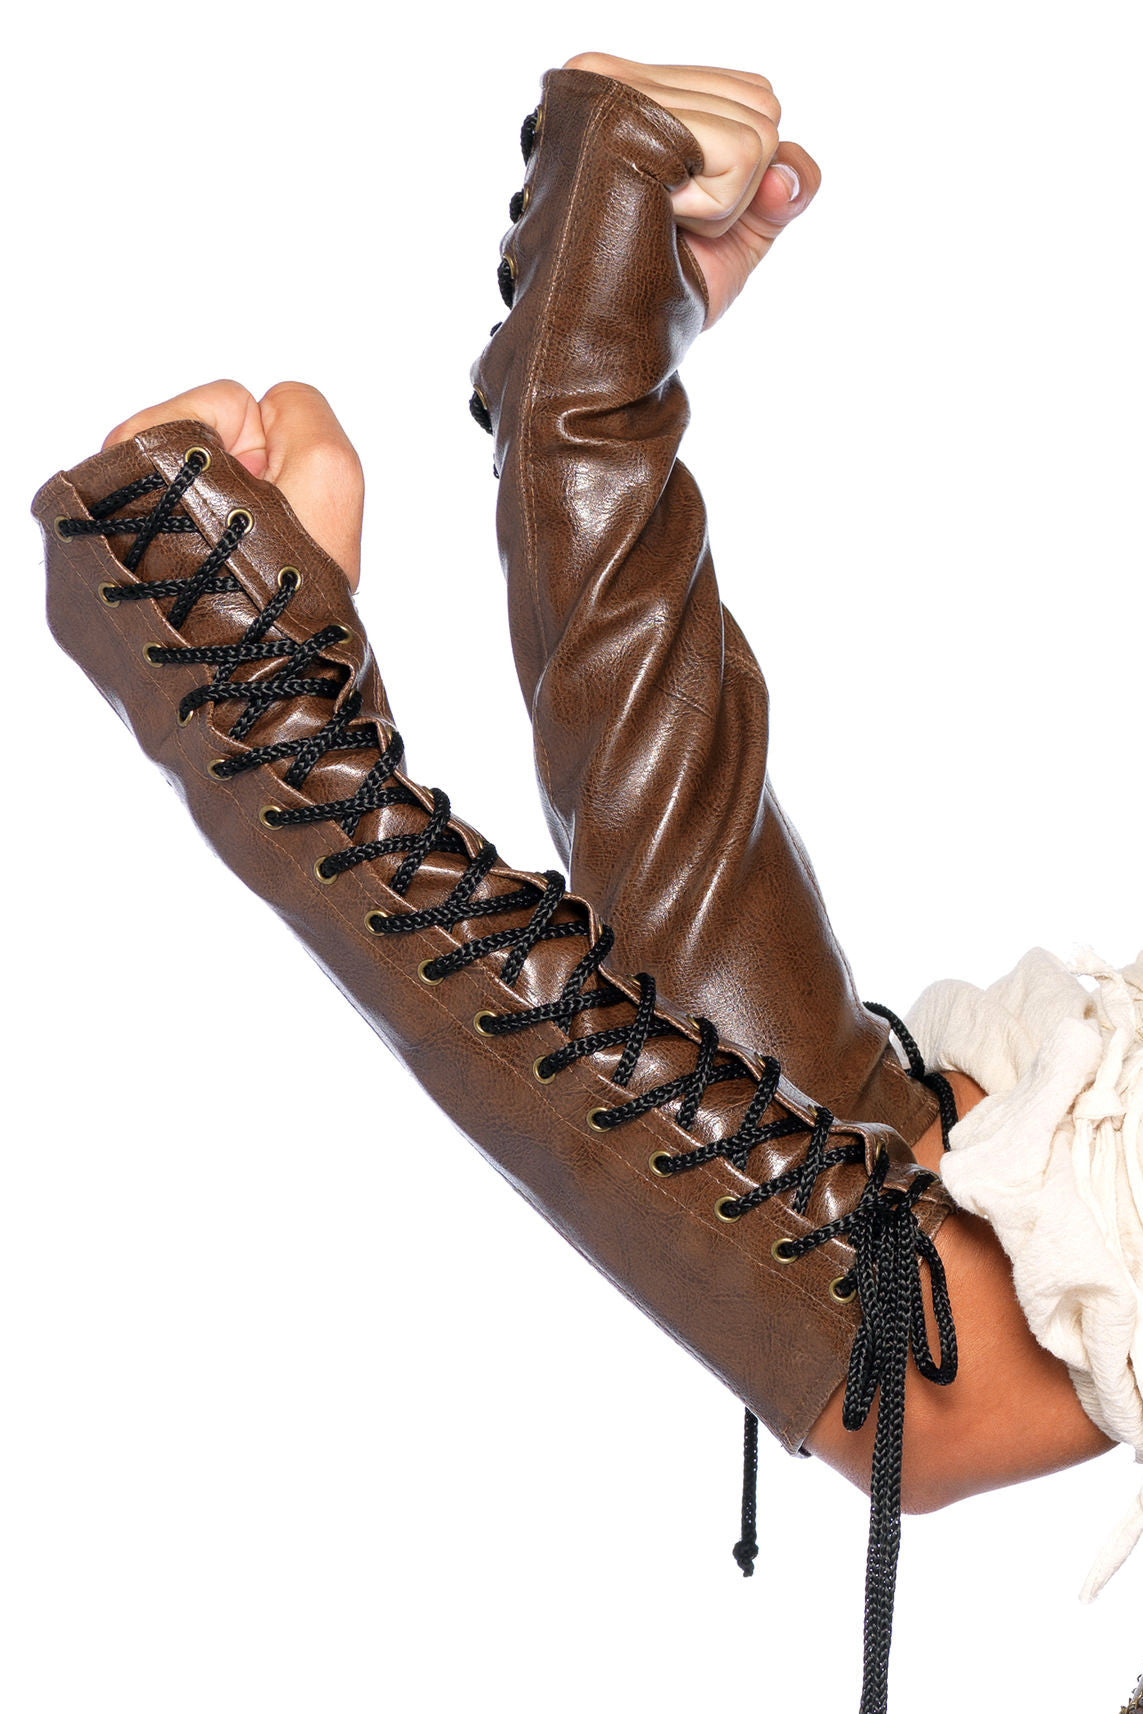 Faux Leather Lace-Up Gauntlets